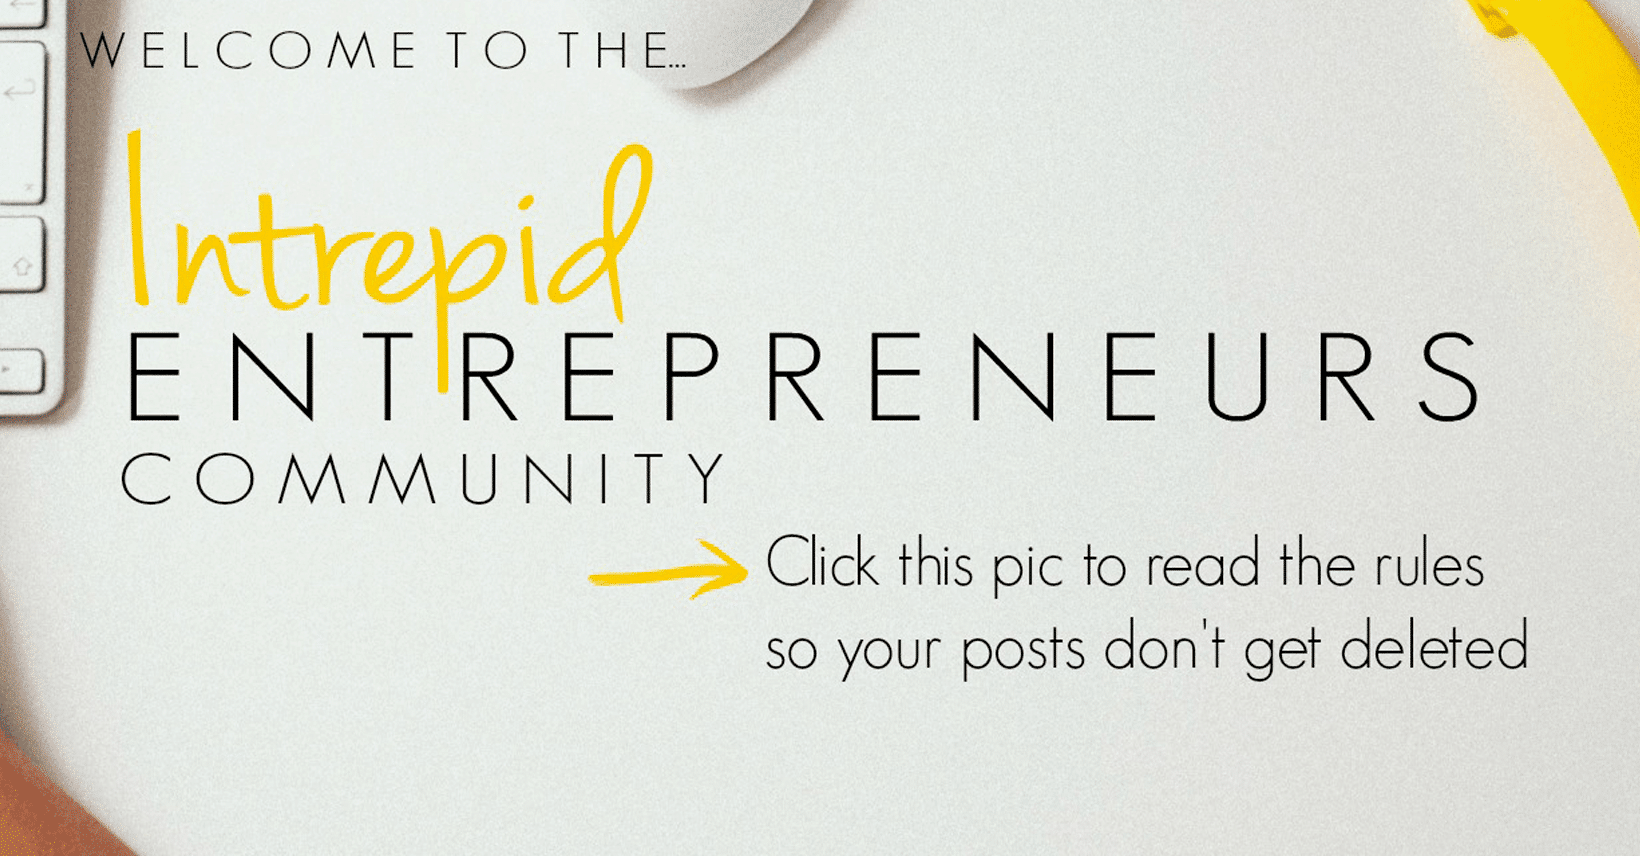 Intrepid Entrepreneurs Community